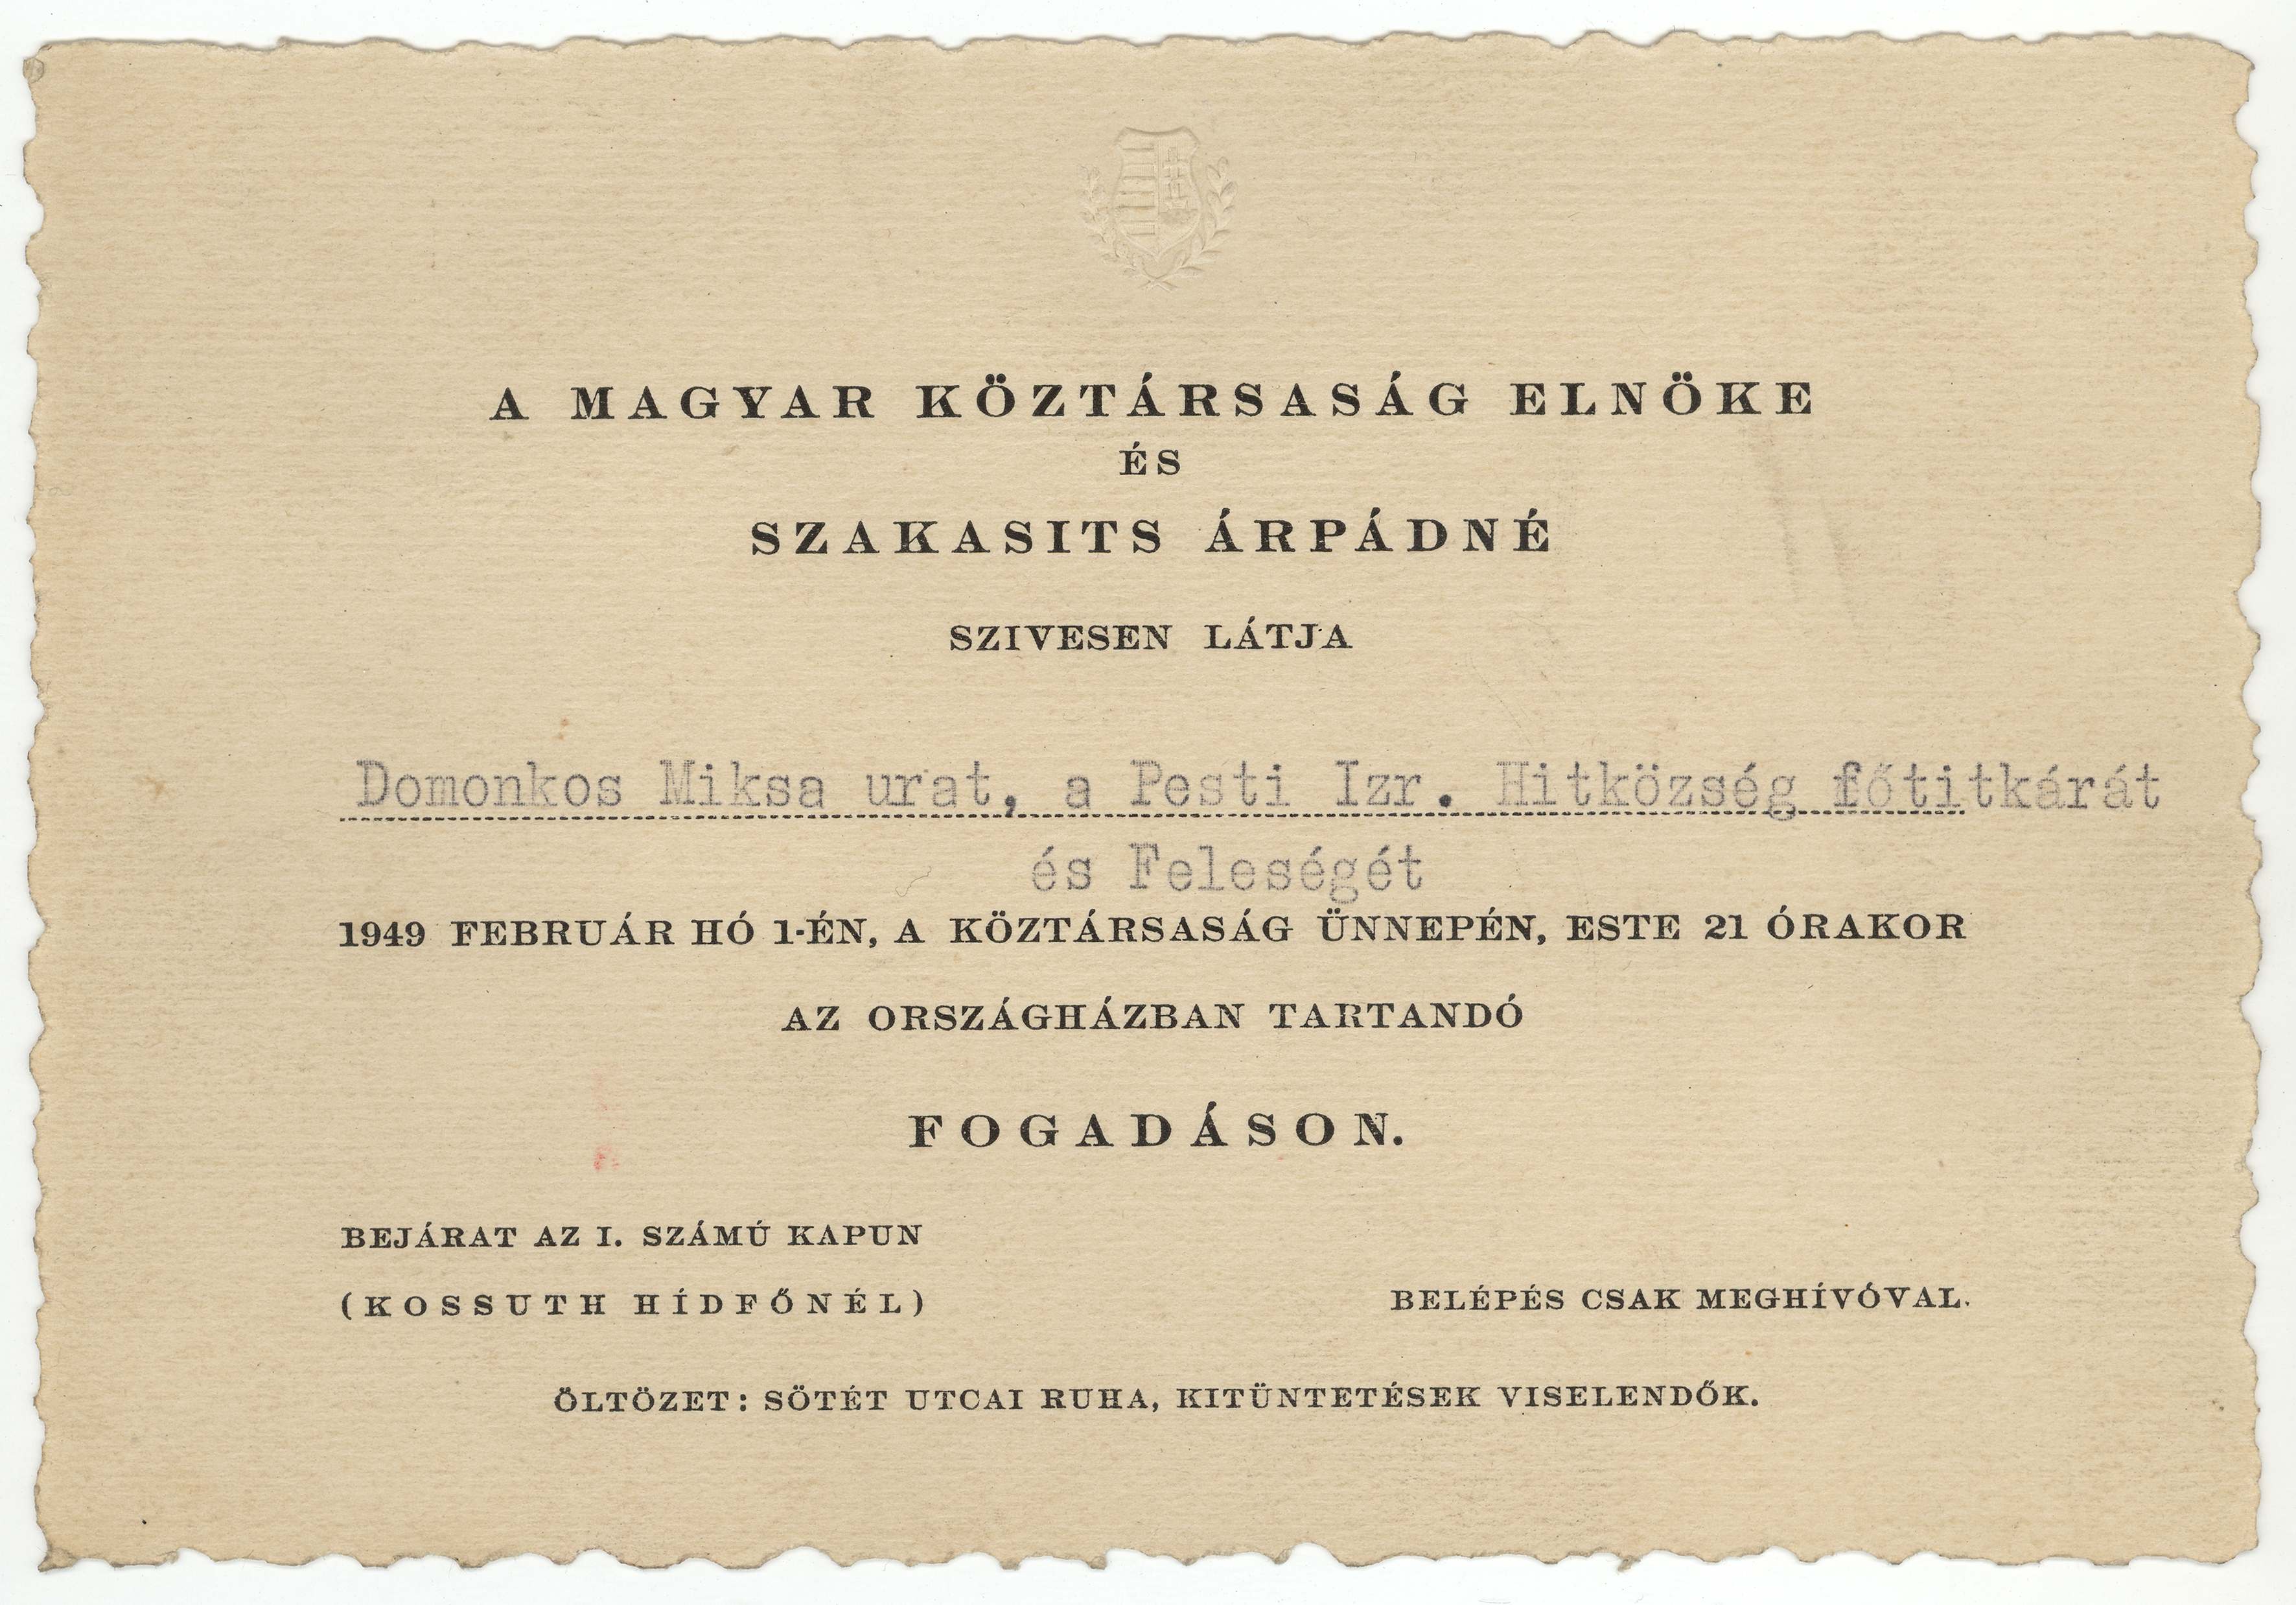 Invitation for Miksa Domonkos and his wife to a reception in Parliament